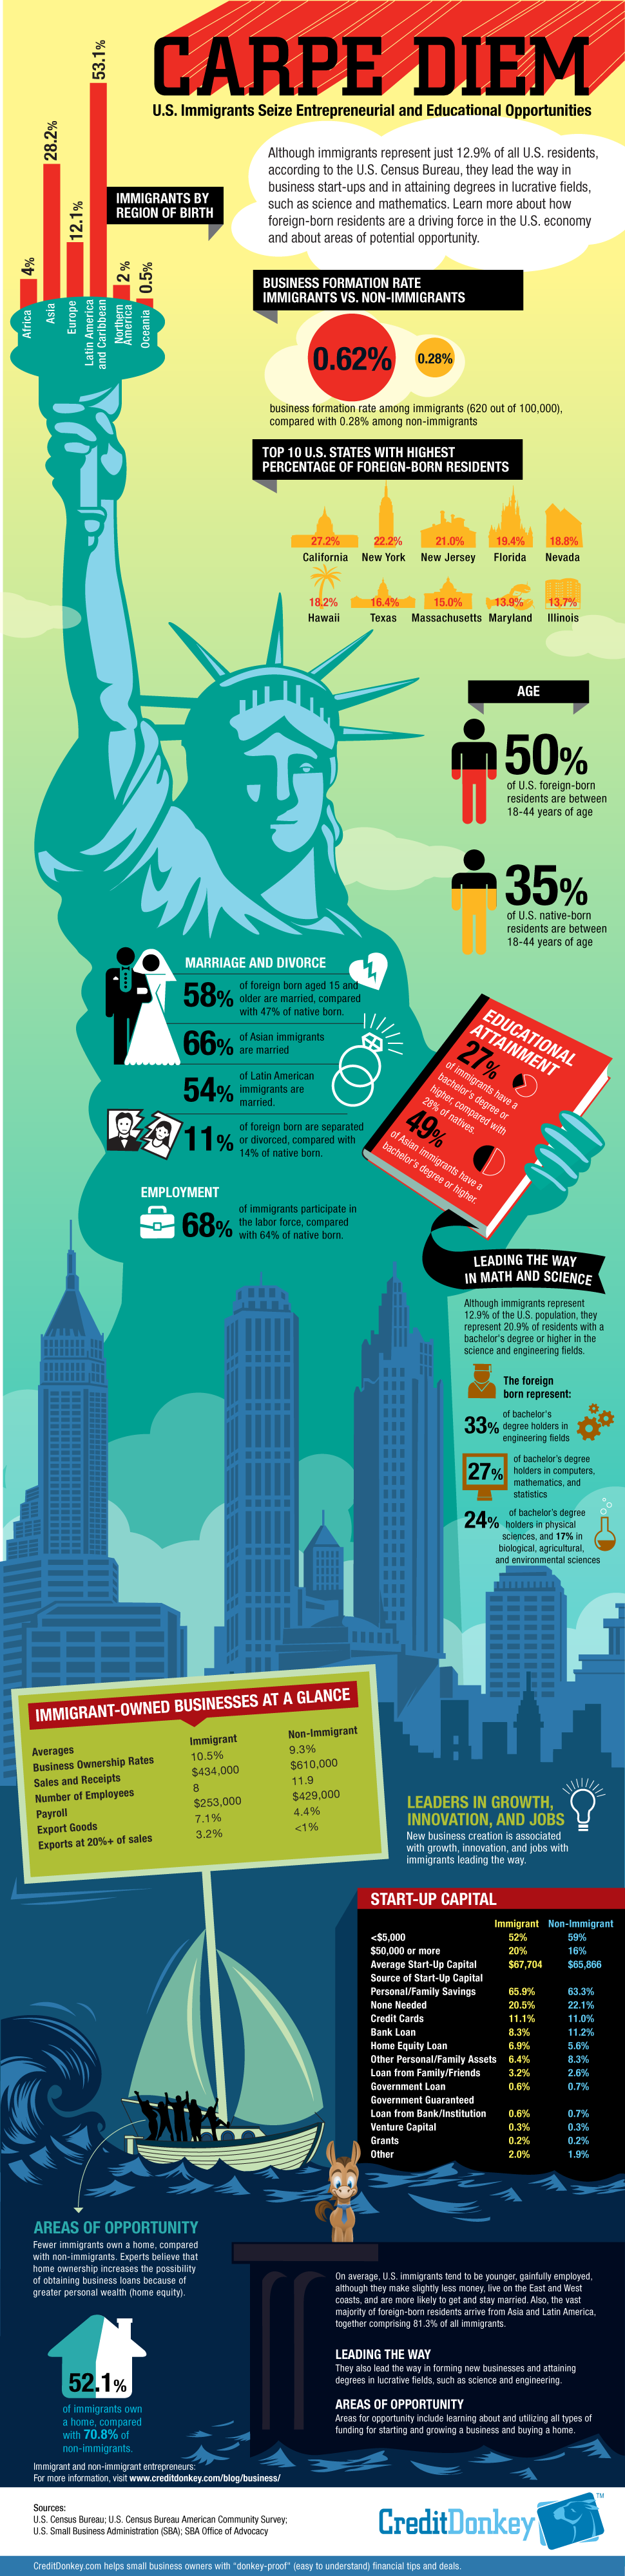 How To Build Credit New Immigrant By David Almondgraphic: Immigrant  Entrepreneurs © Creditdonkey Immigrant Entrepreneurs